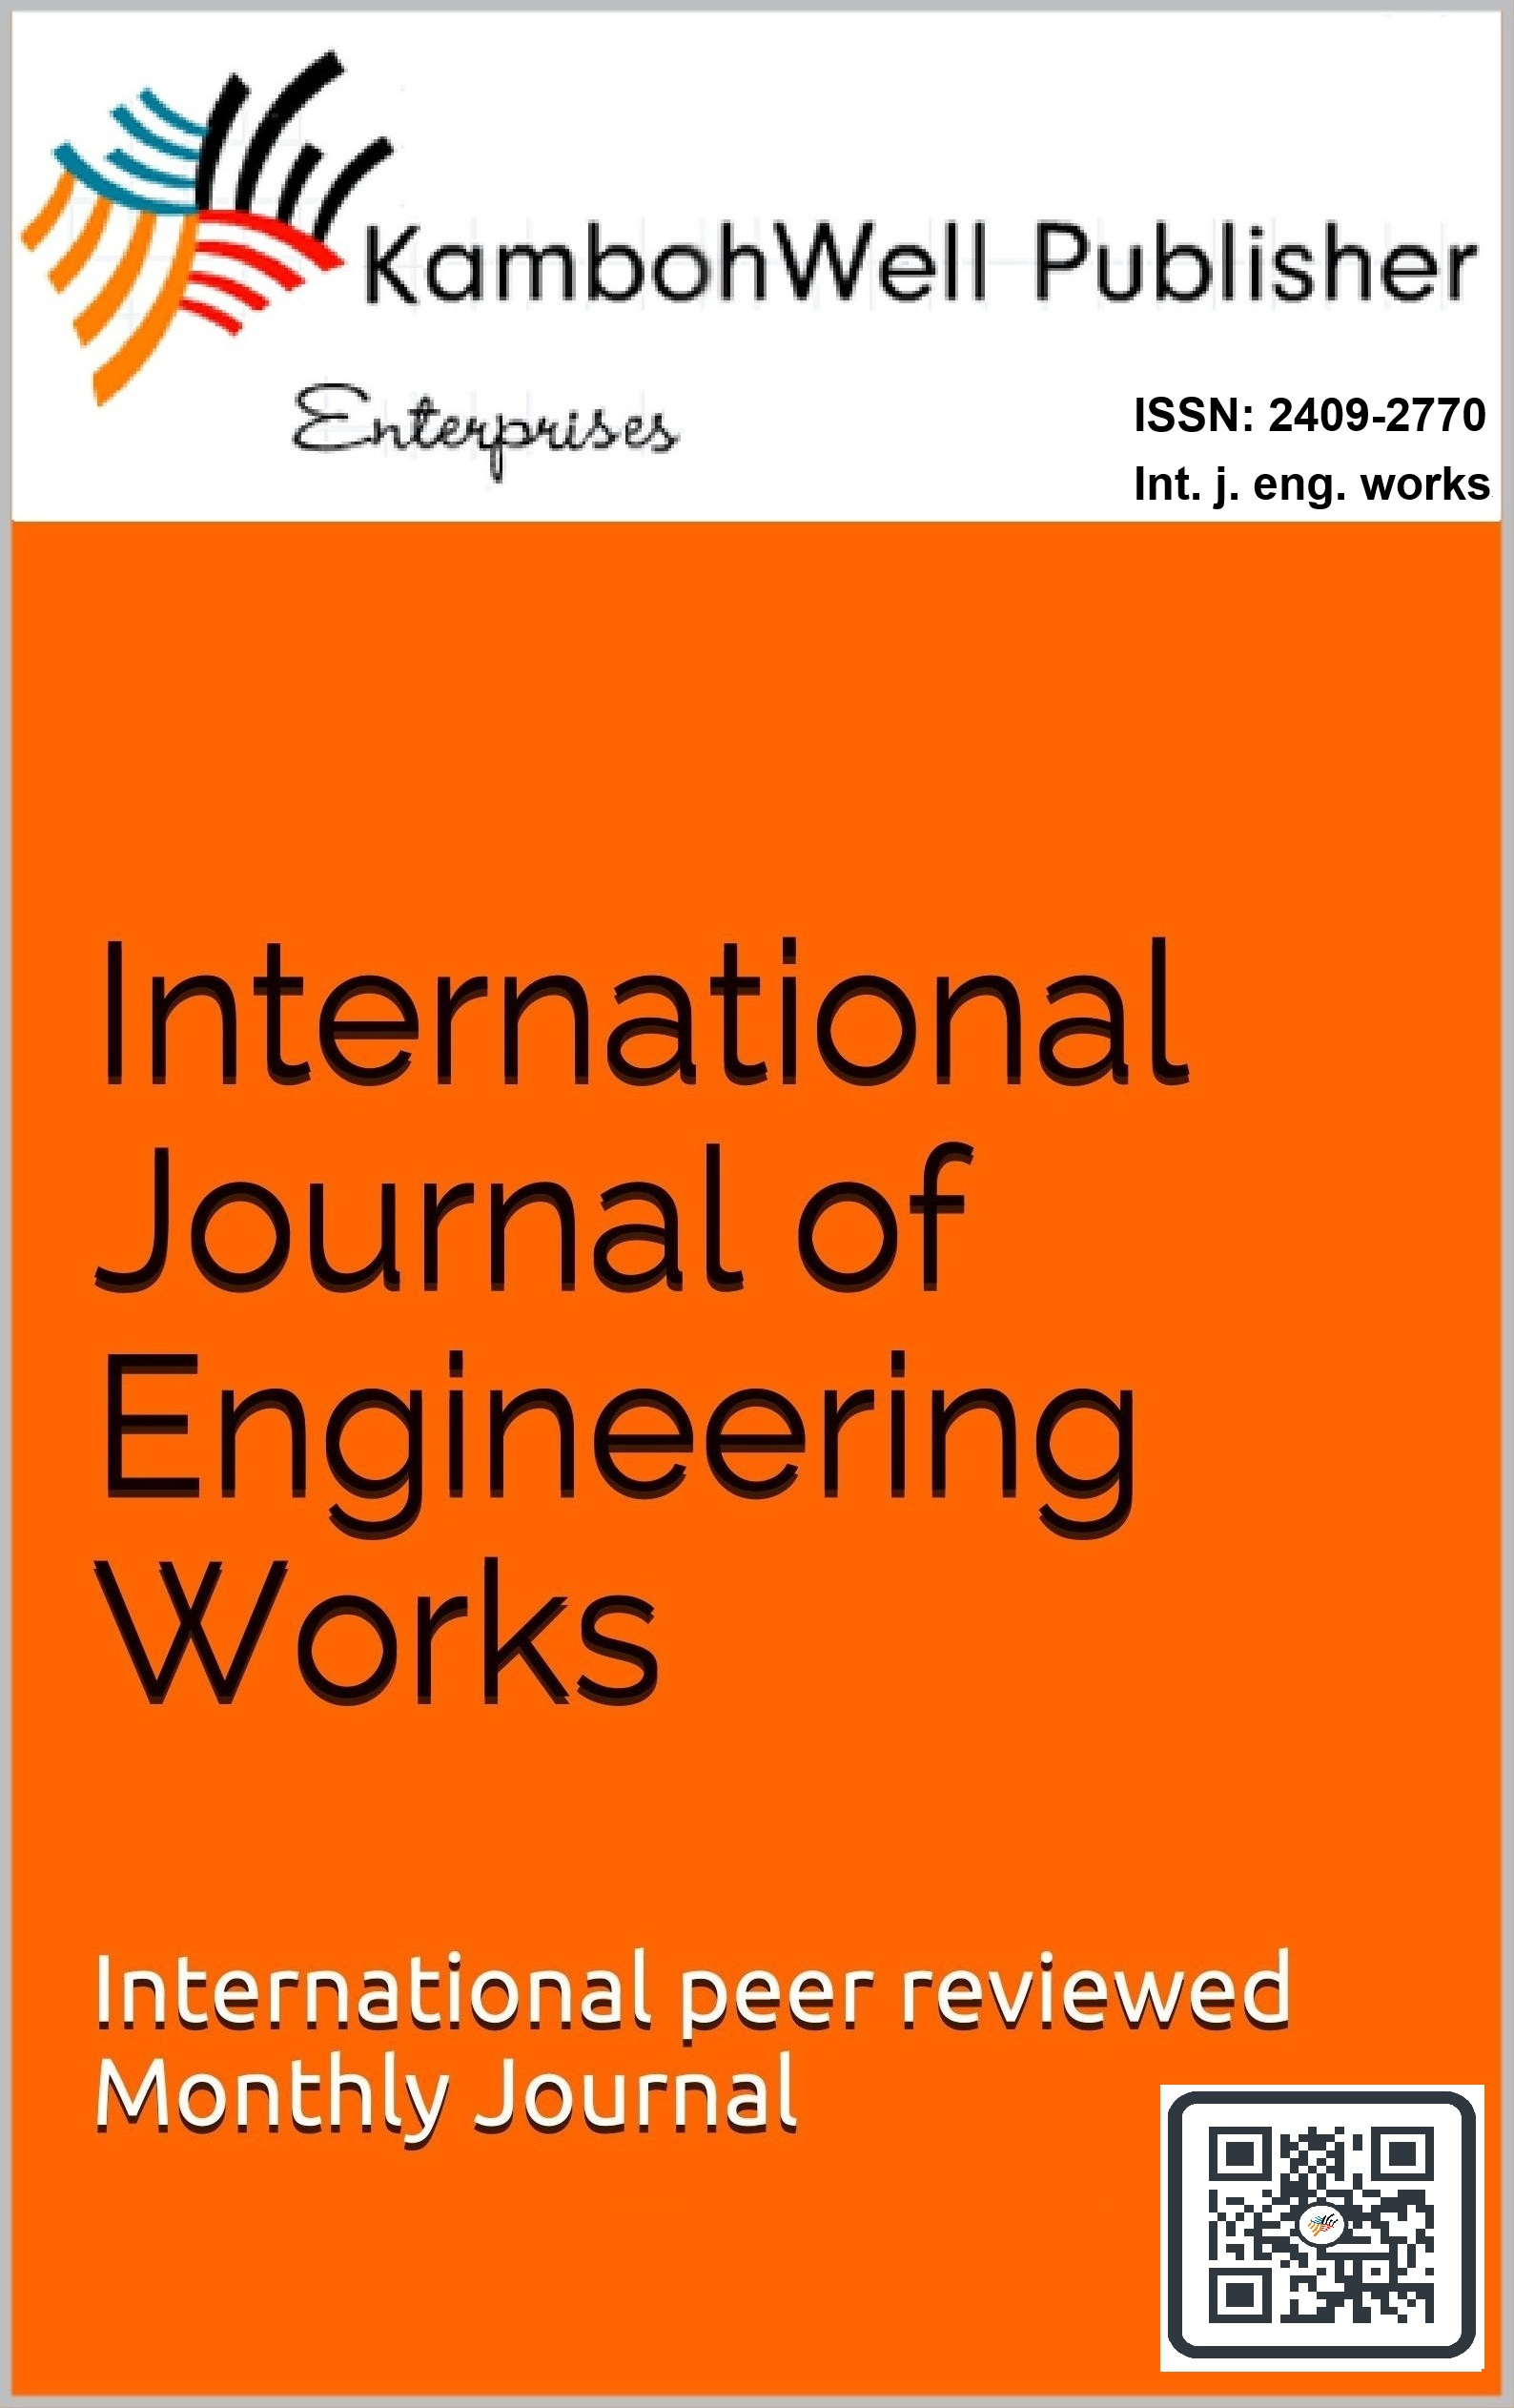 International Journal of Engineering Works